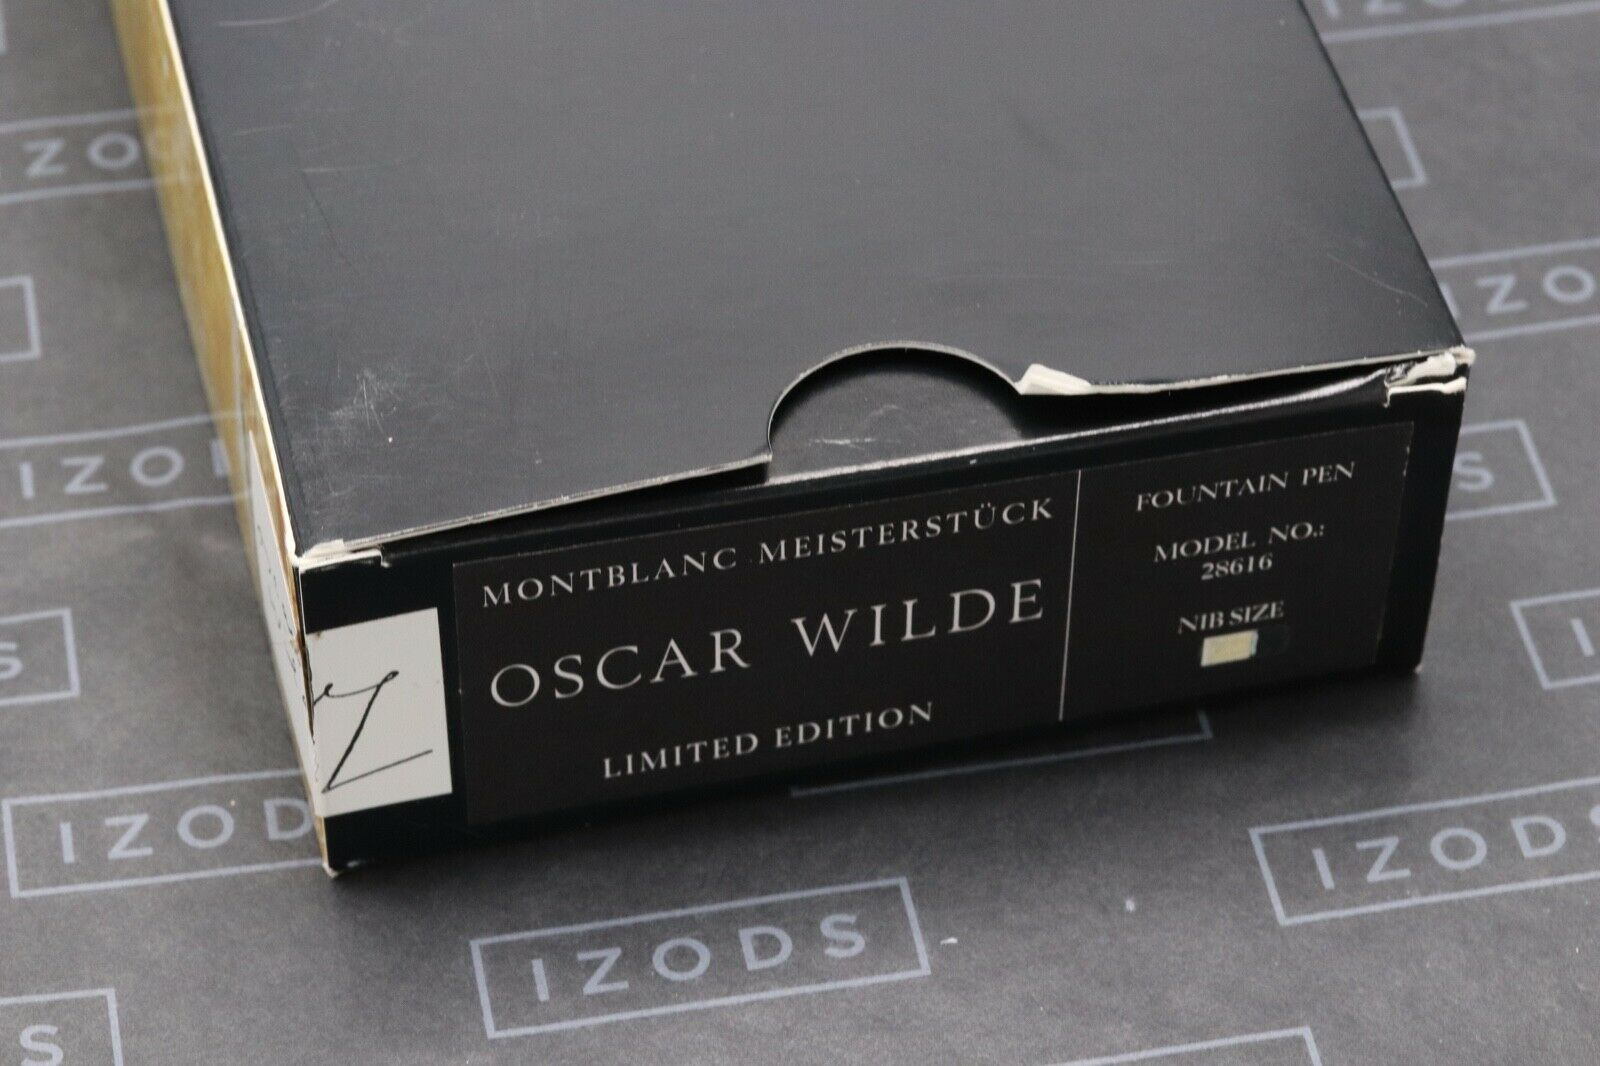 Montblanc Oscar Wilde Writers Limited Edition Mechanical Pencil 8